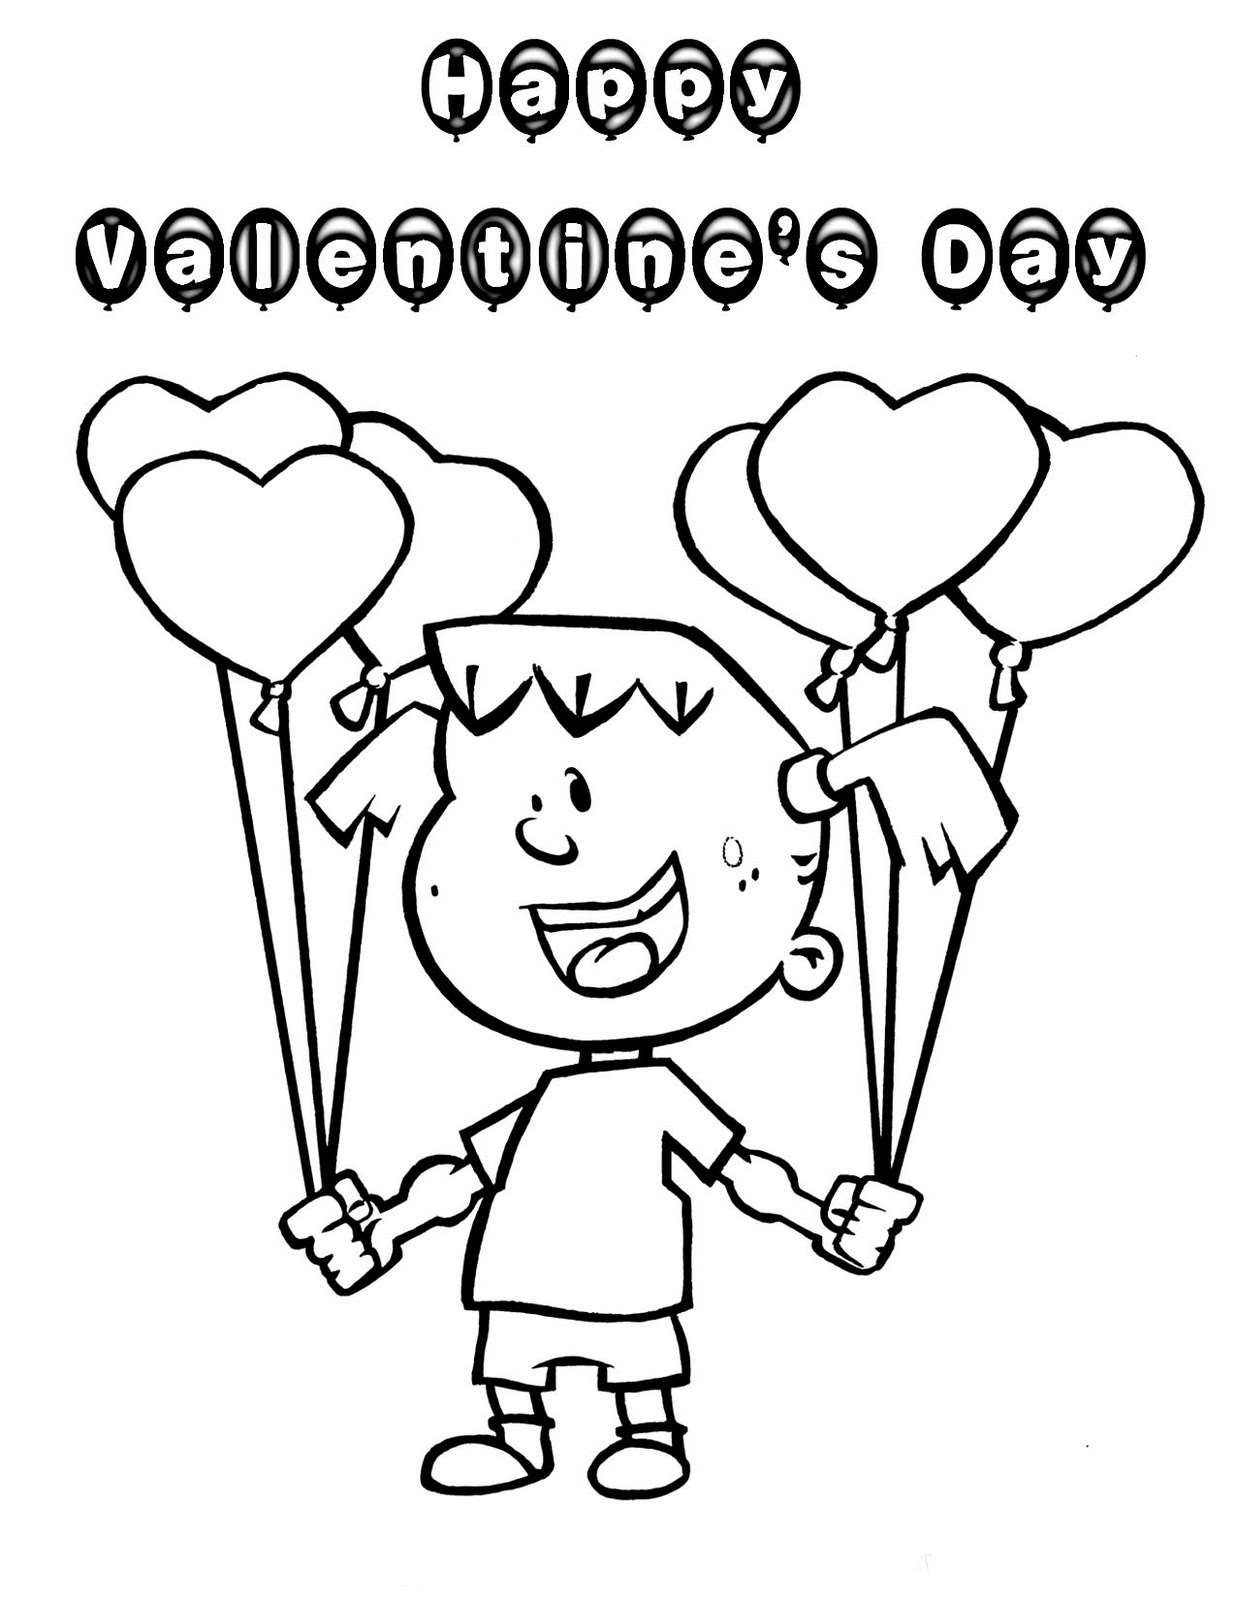 Valentines Day Coloring Pages Valentine Balloons Coloring